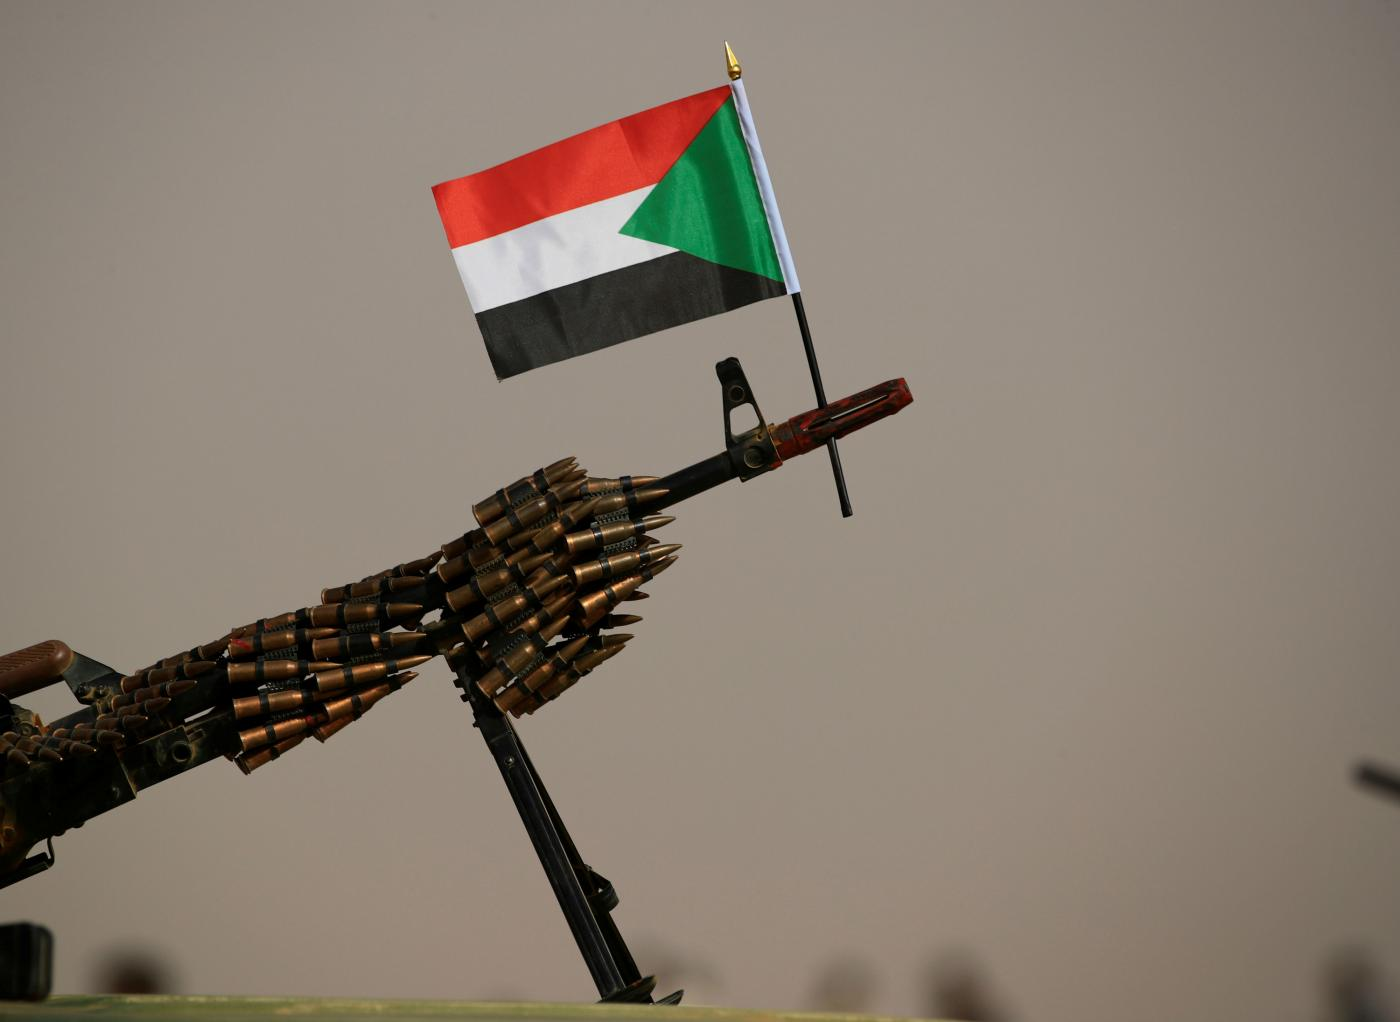 sudan-rsf-reuters-edit.jpg